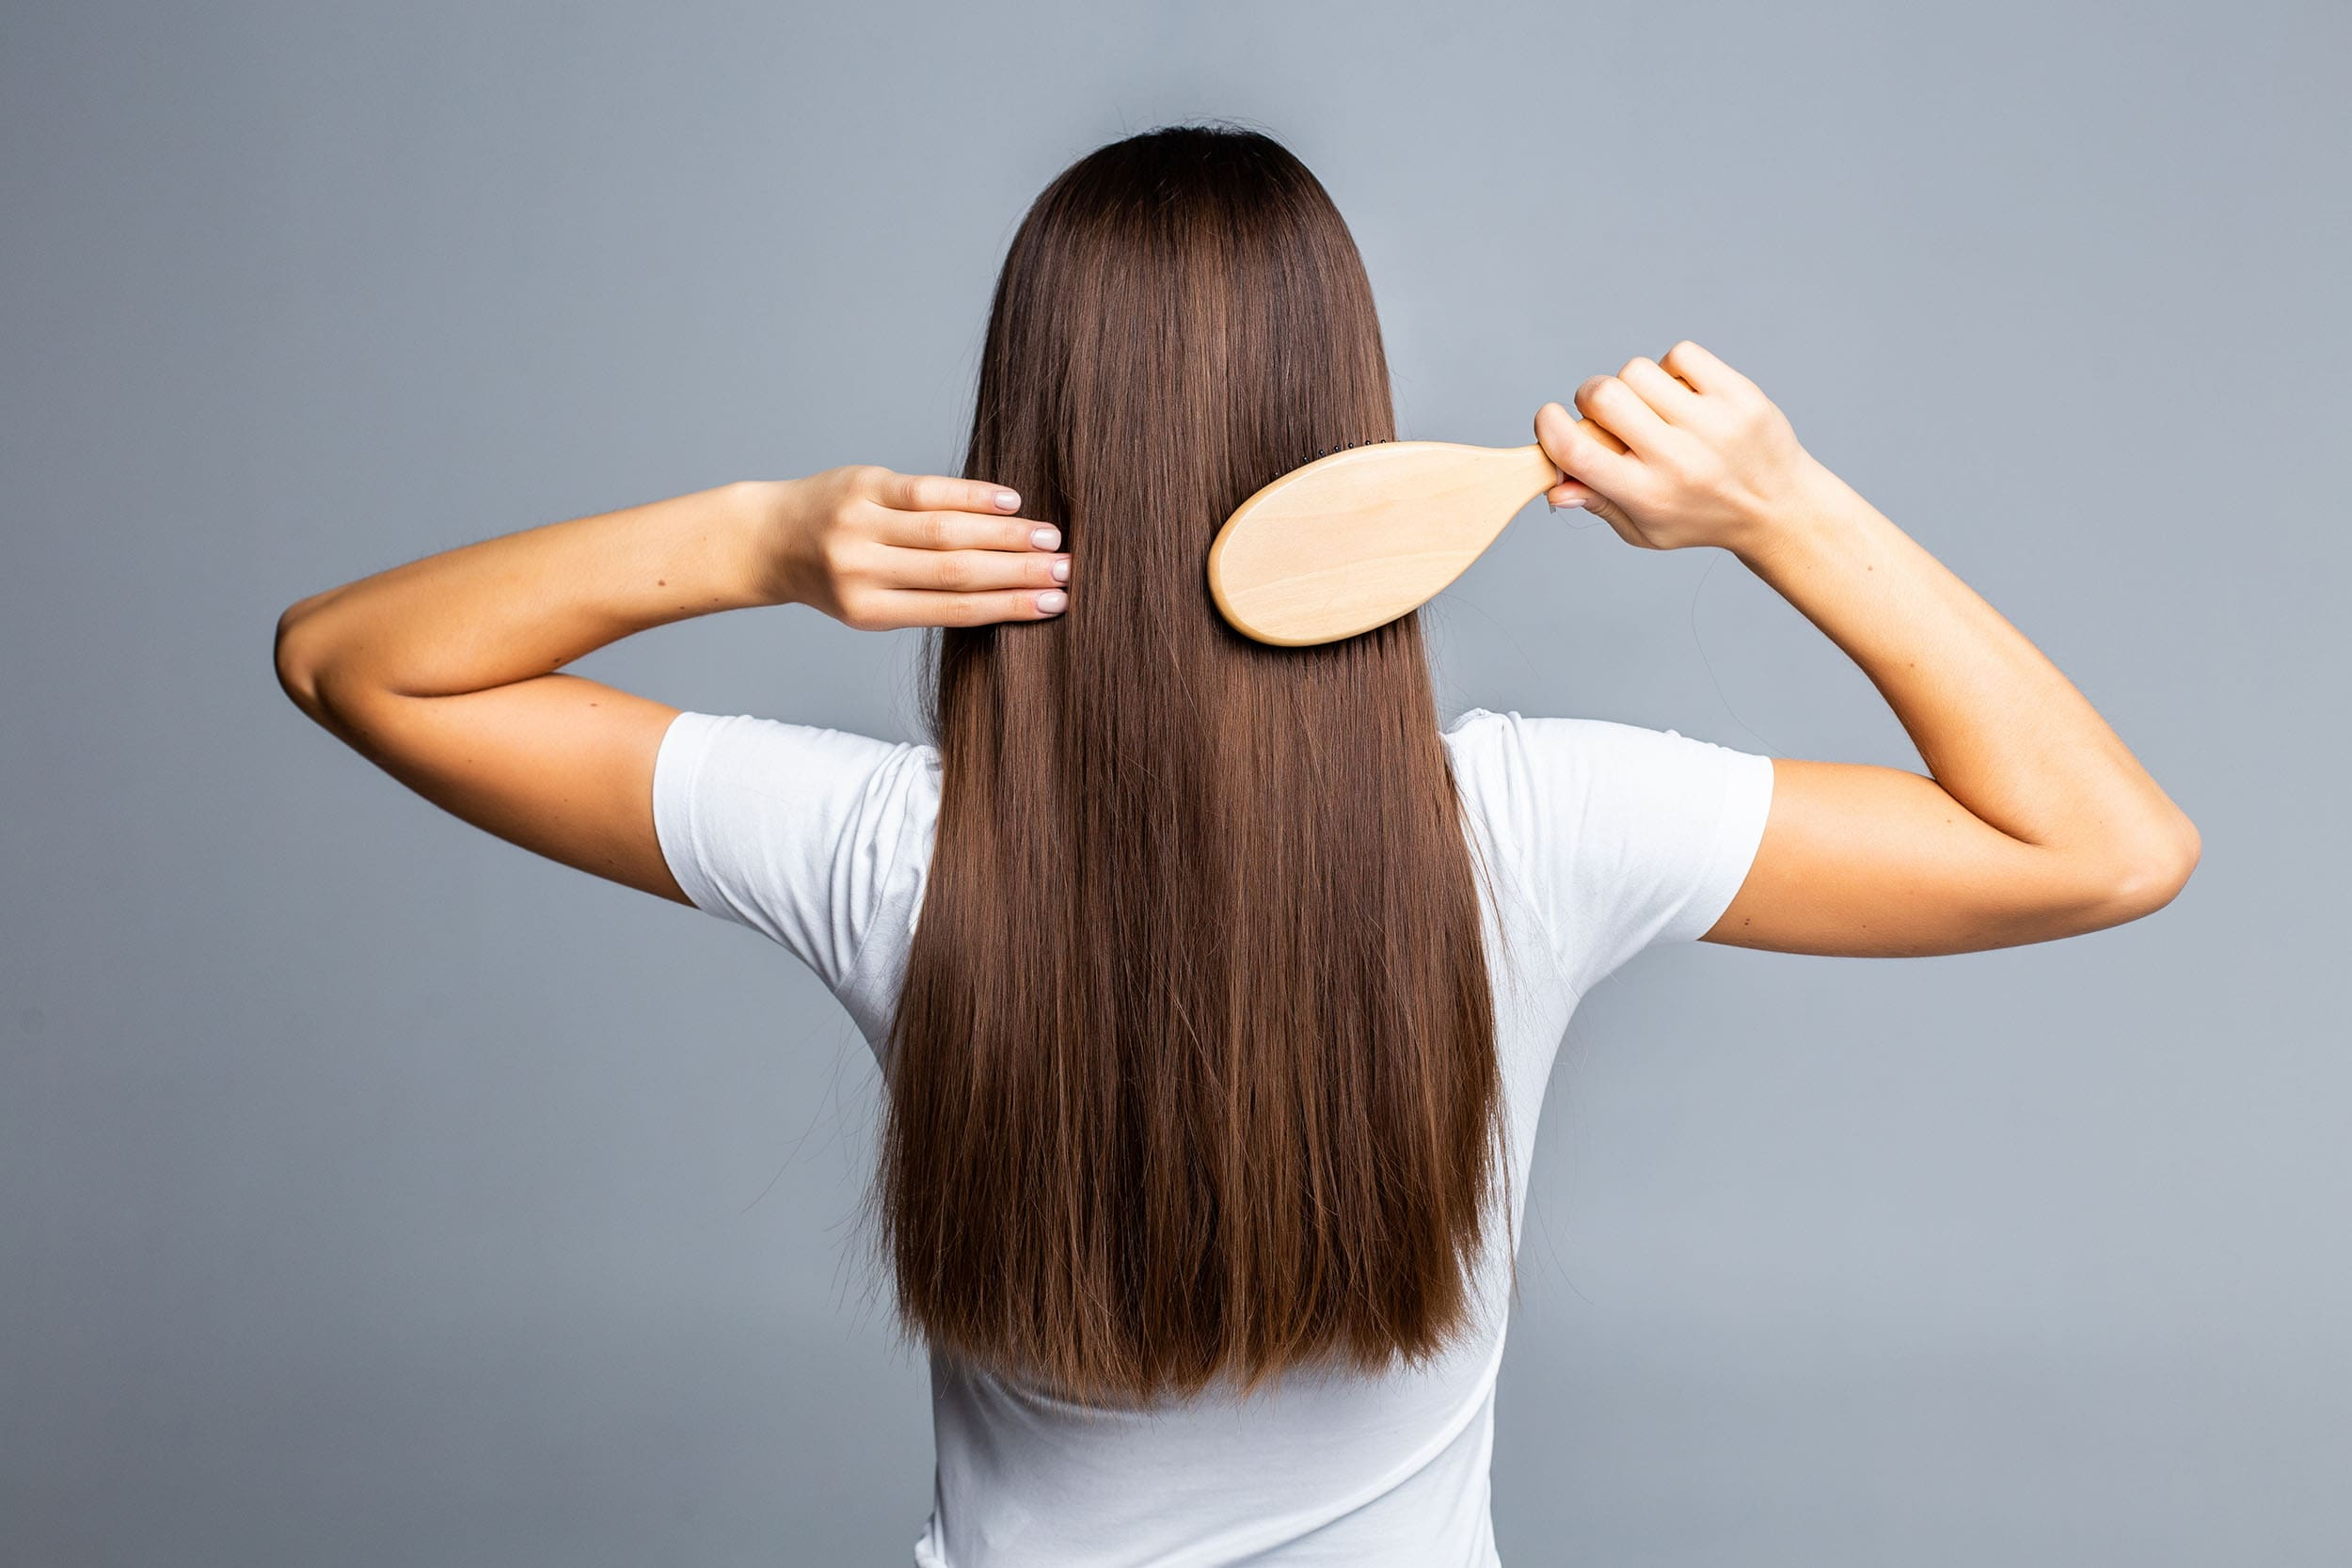 Best Hair Salon in Dehradun - Hair Cutting, Colouring, Straightening, Keratin, Hair Extensions